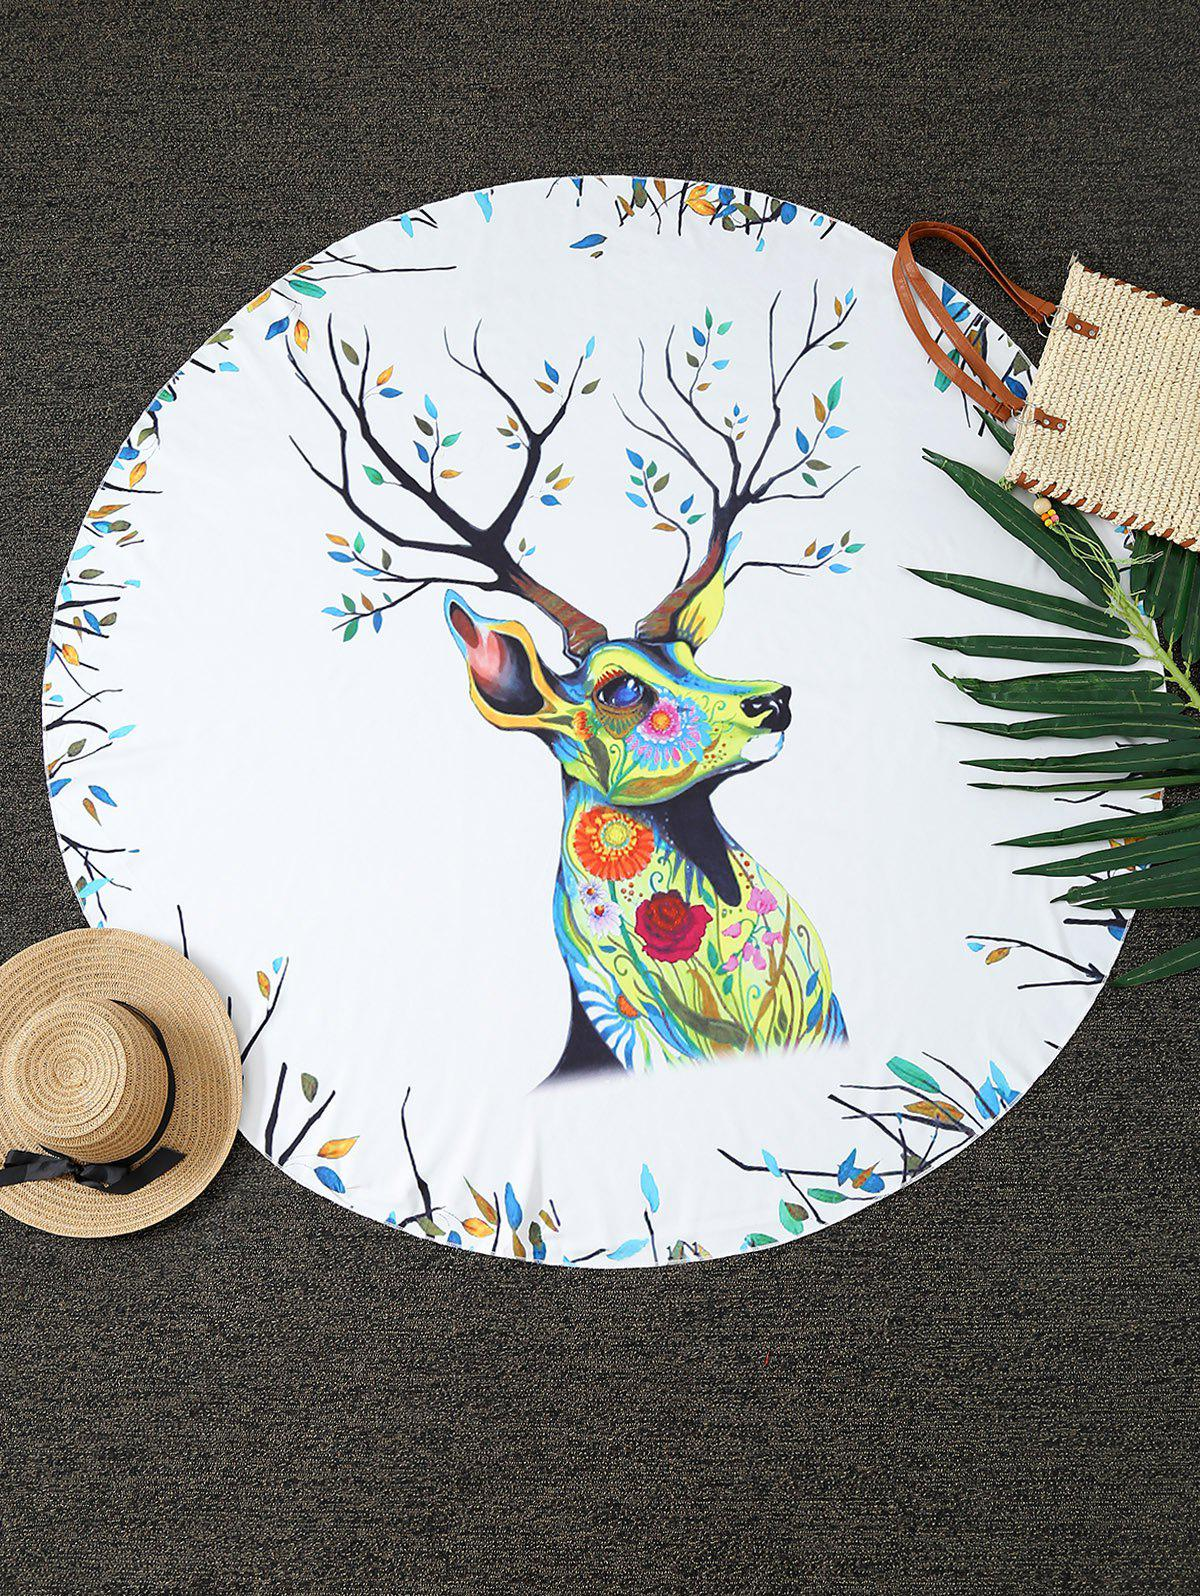 Chic Christmas Reindeer Print Round Blanket Throw